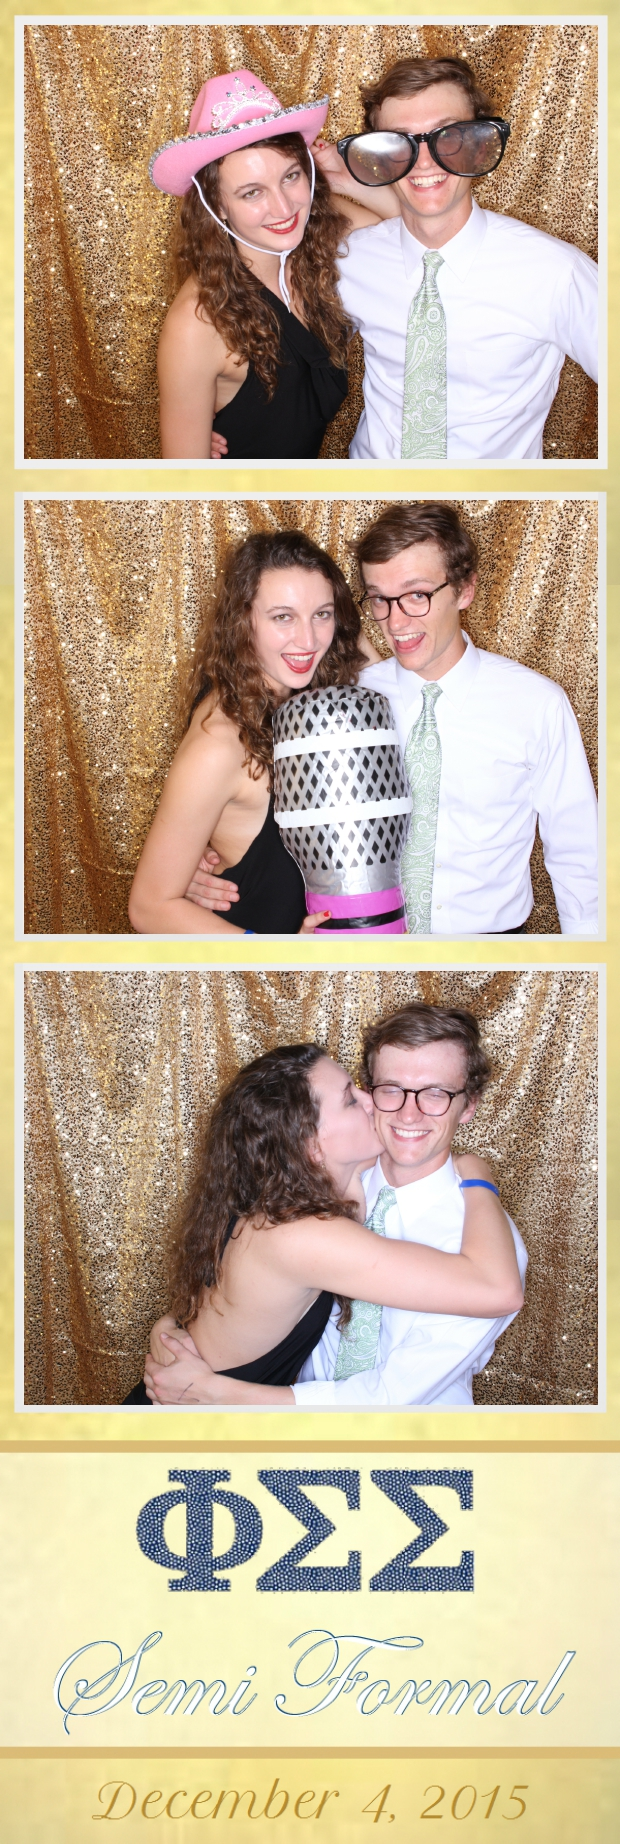 Guest House Events Photo Booth Phi Sigma Sigma Semi Formal (80).jpg